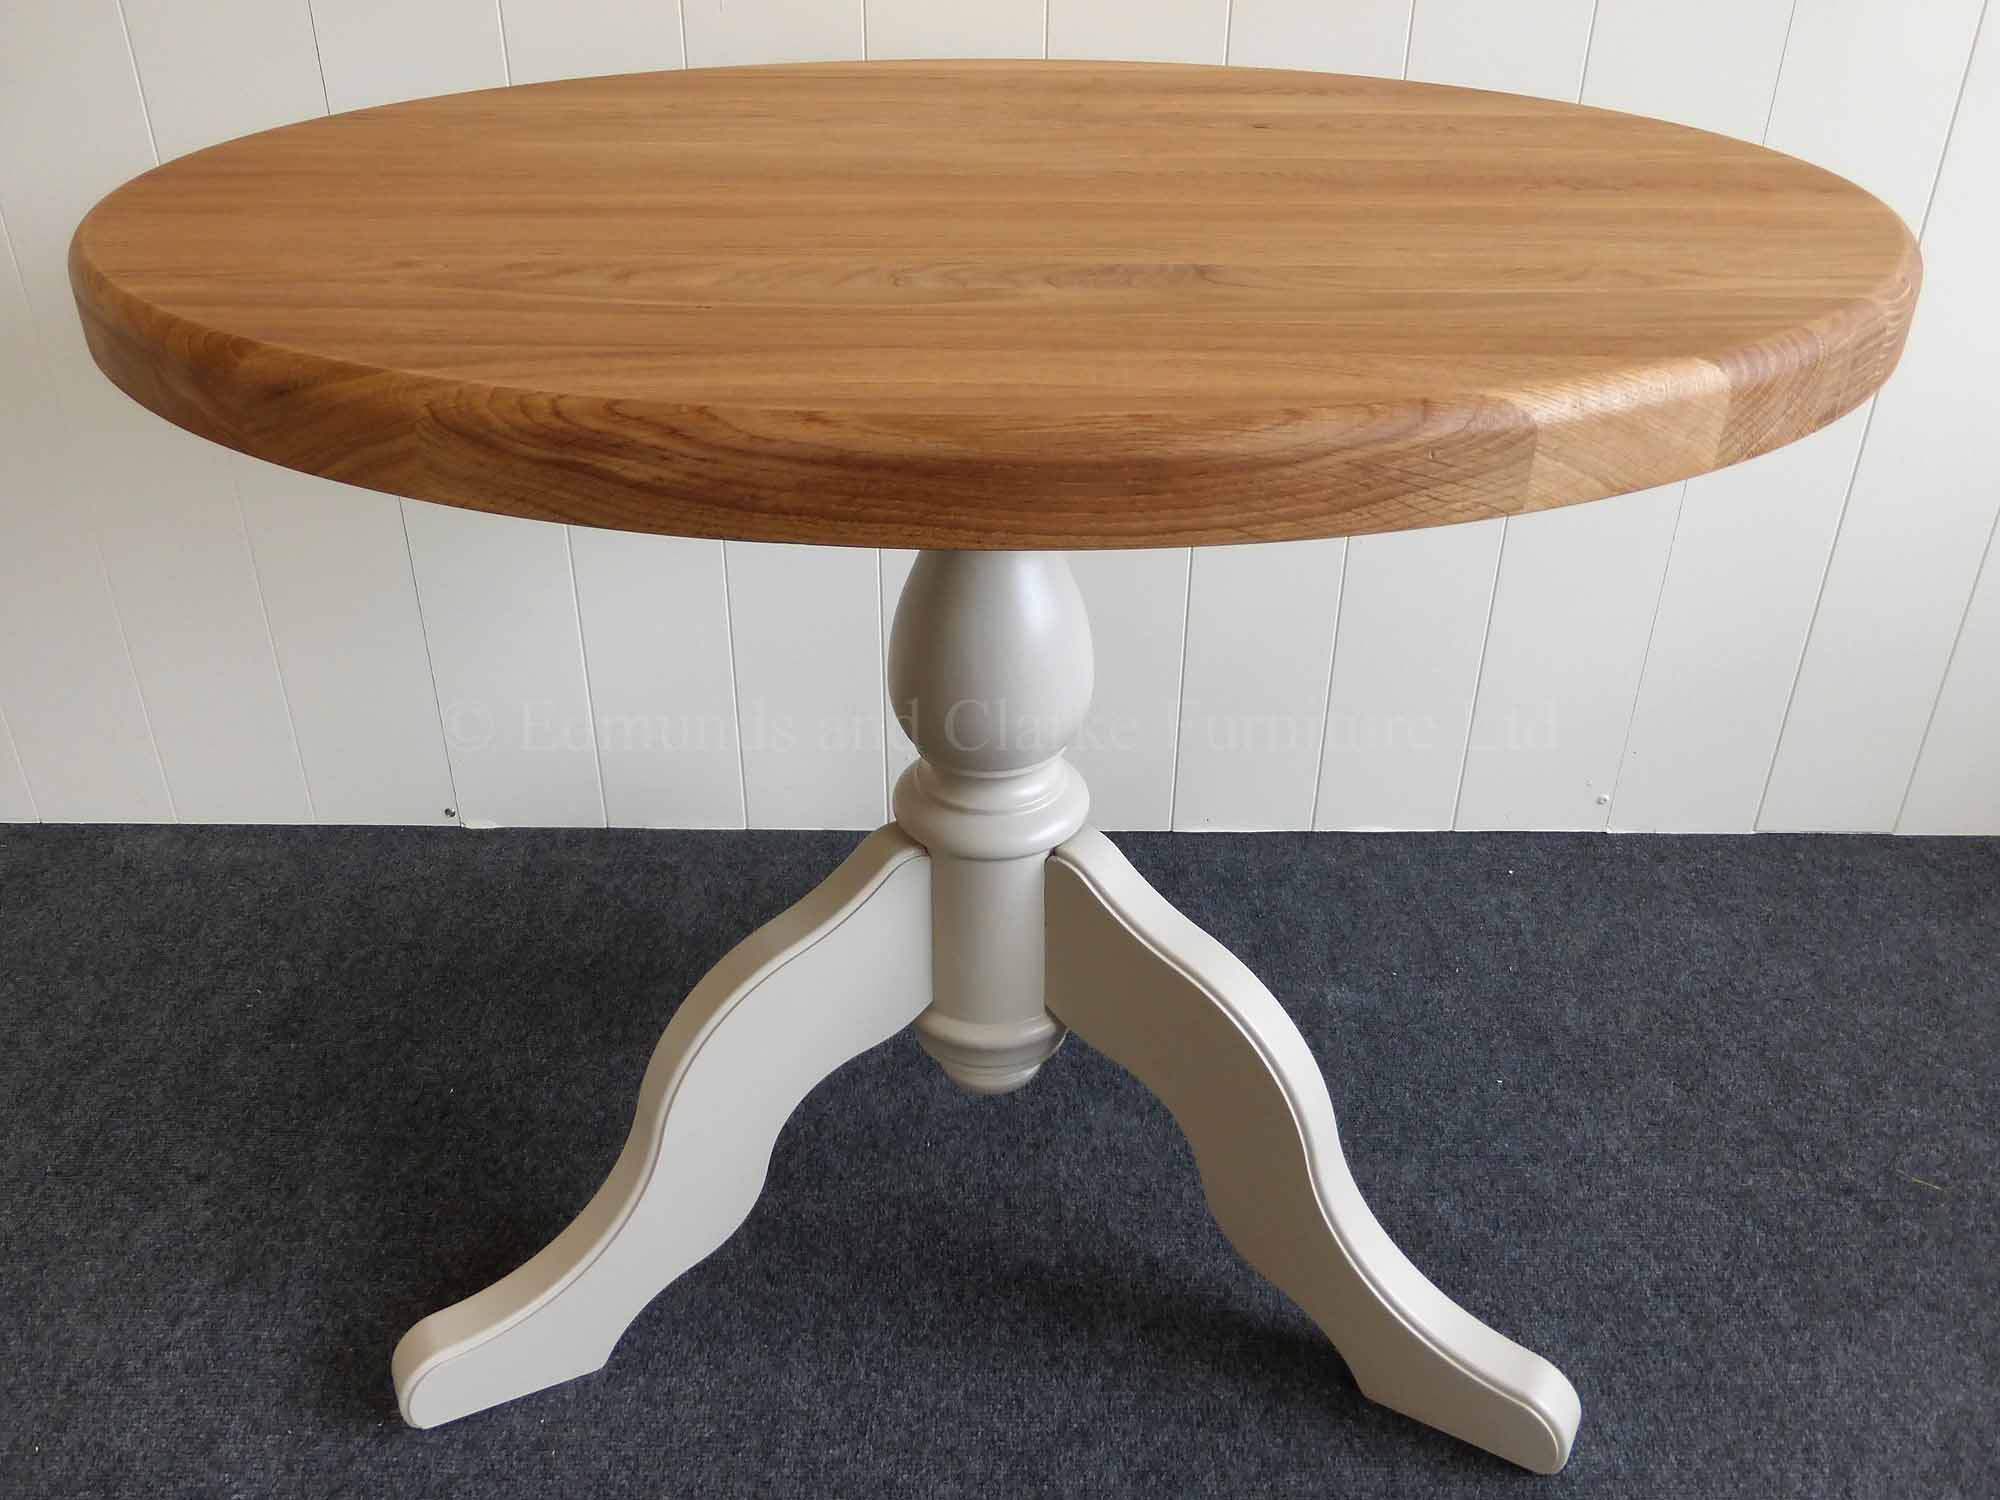 3 feet round circular dining table with central pedestal painted with either oak or pine tops